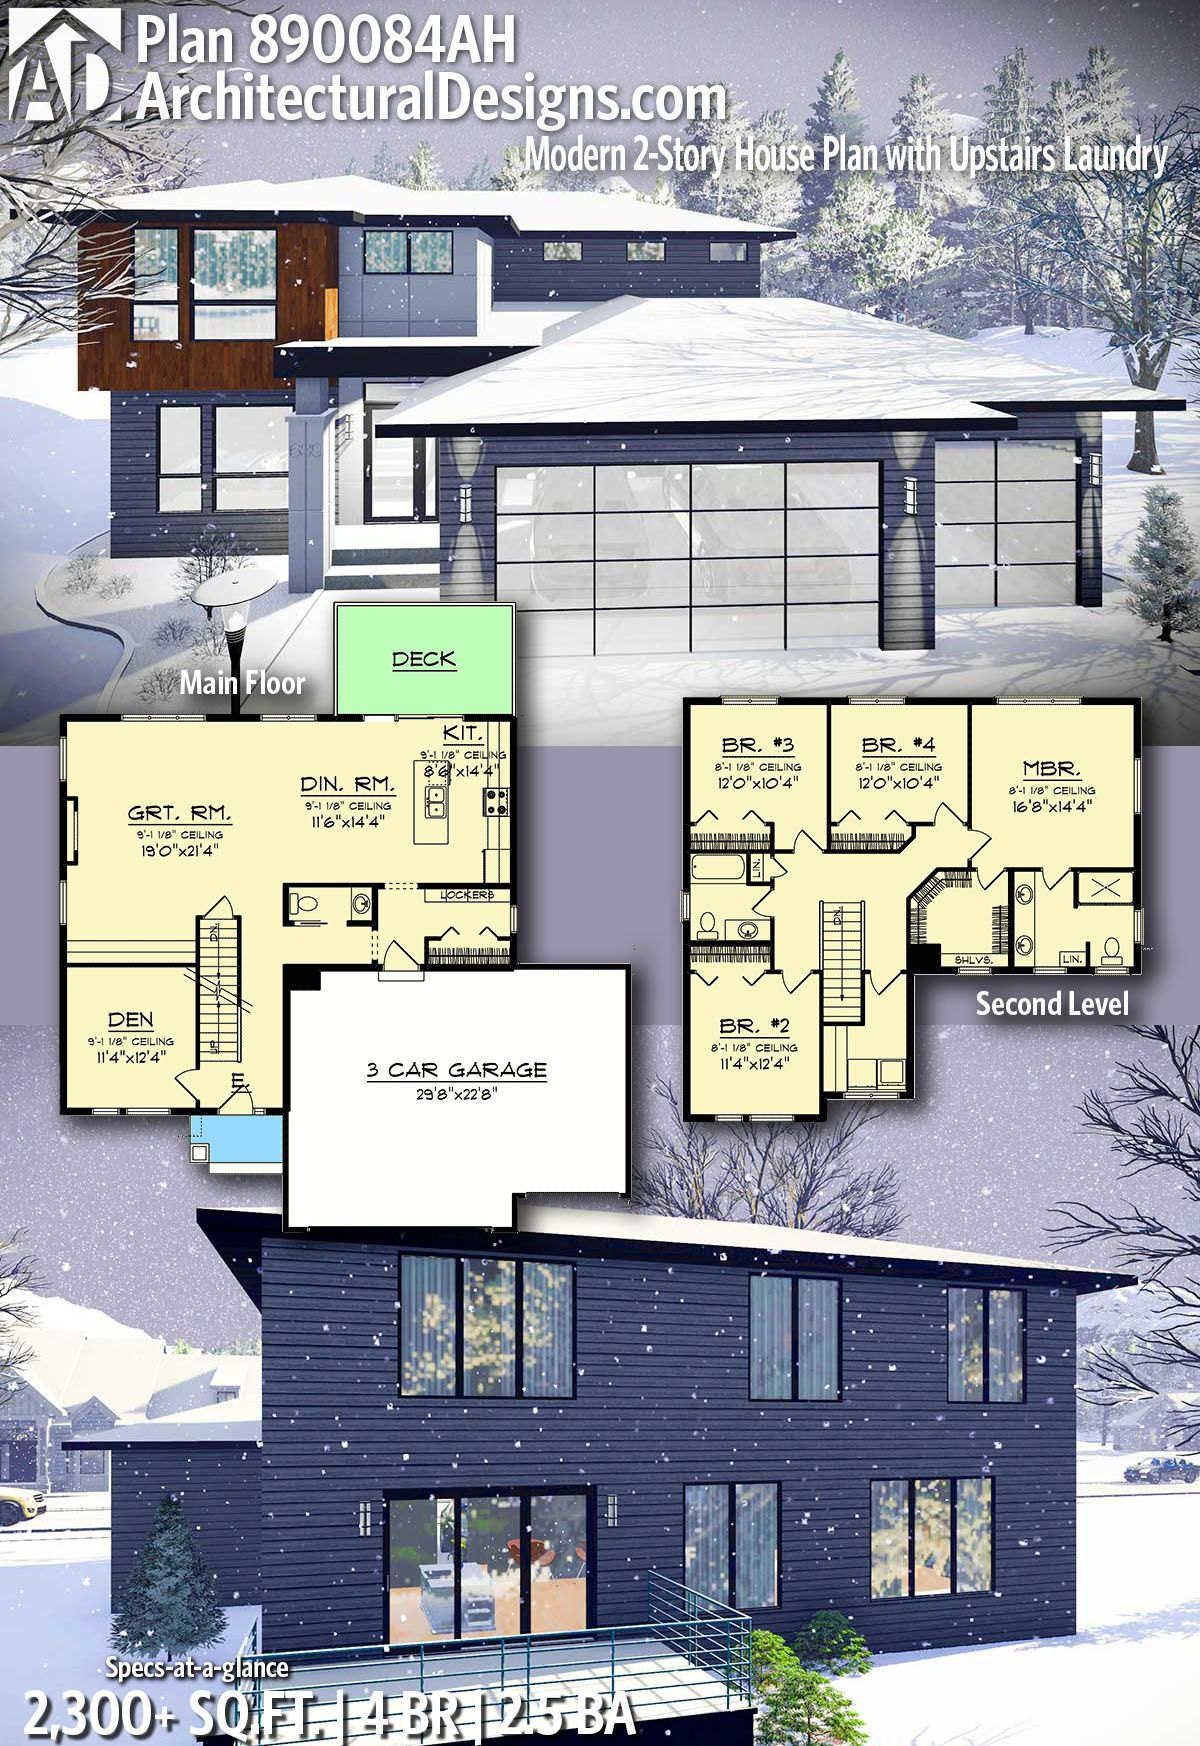 Plan 890084ah Modern 2 Story House Plan With Upstairs Laundry Modern House Plans Modern Architecture House Architecture Design